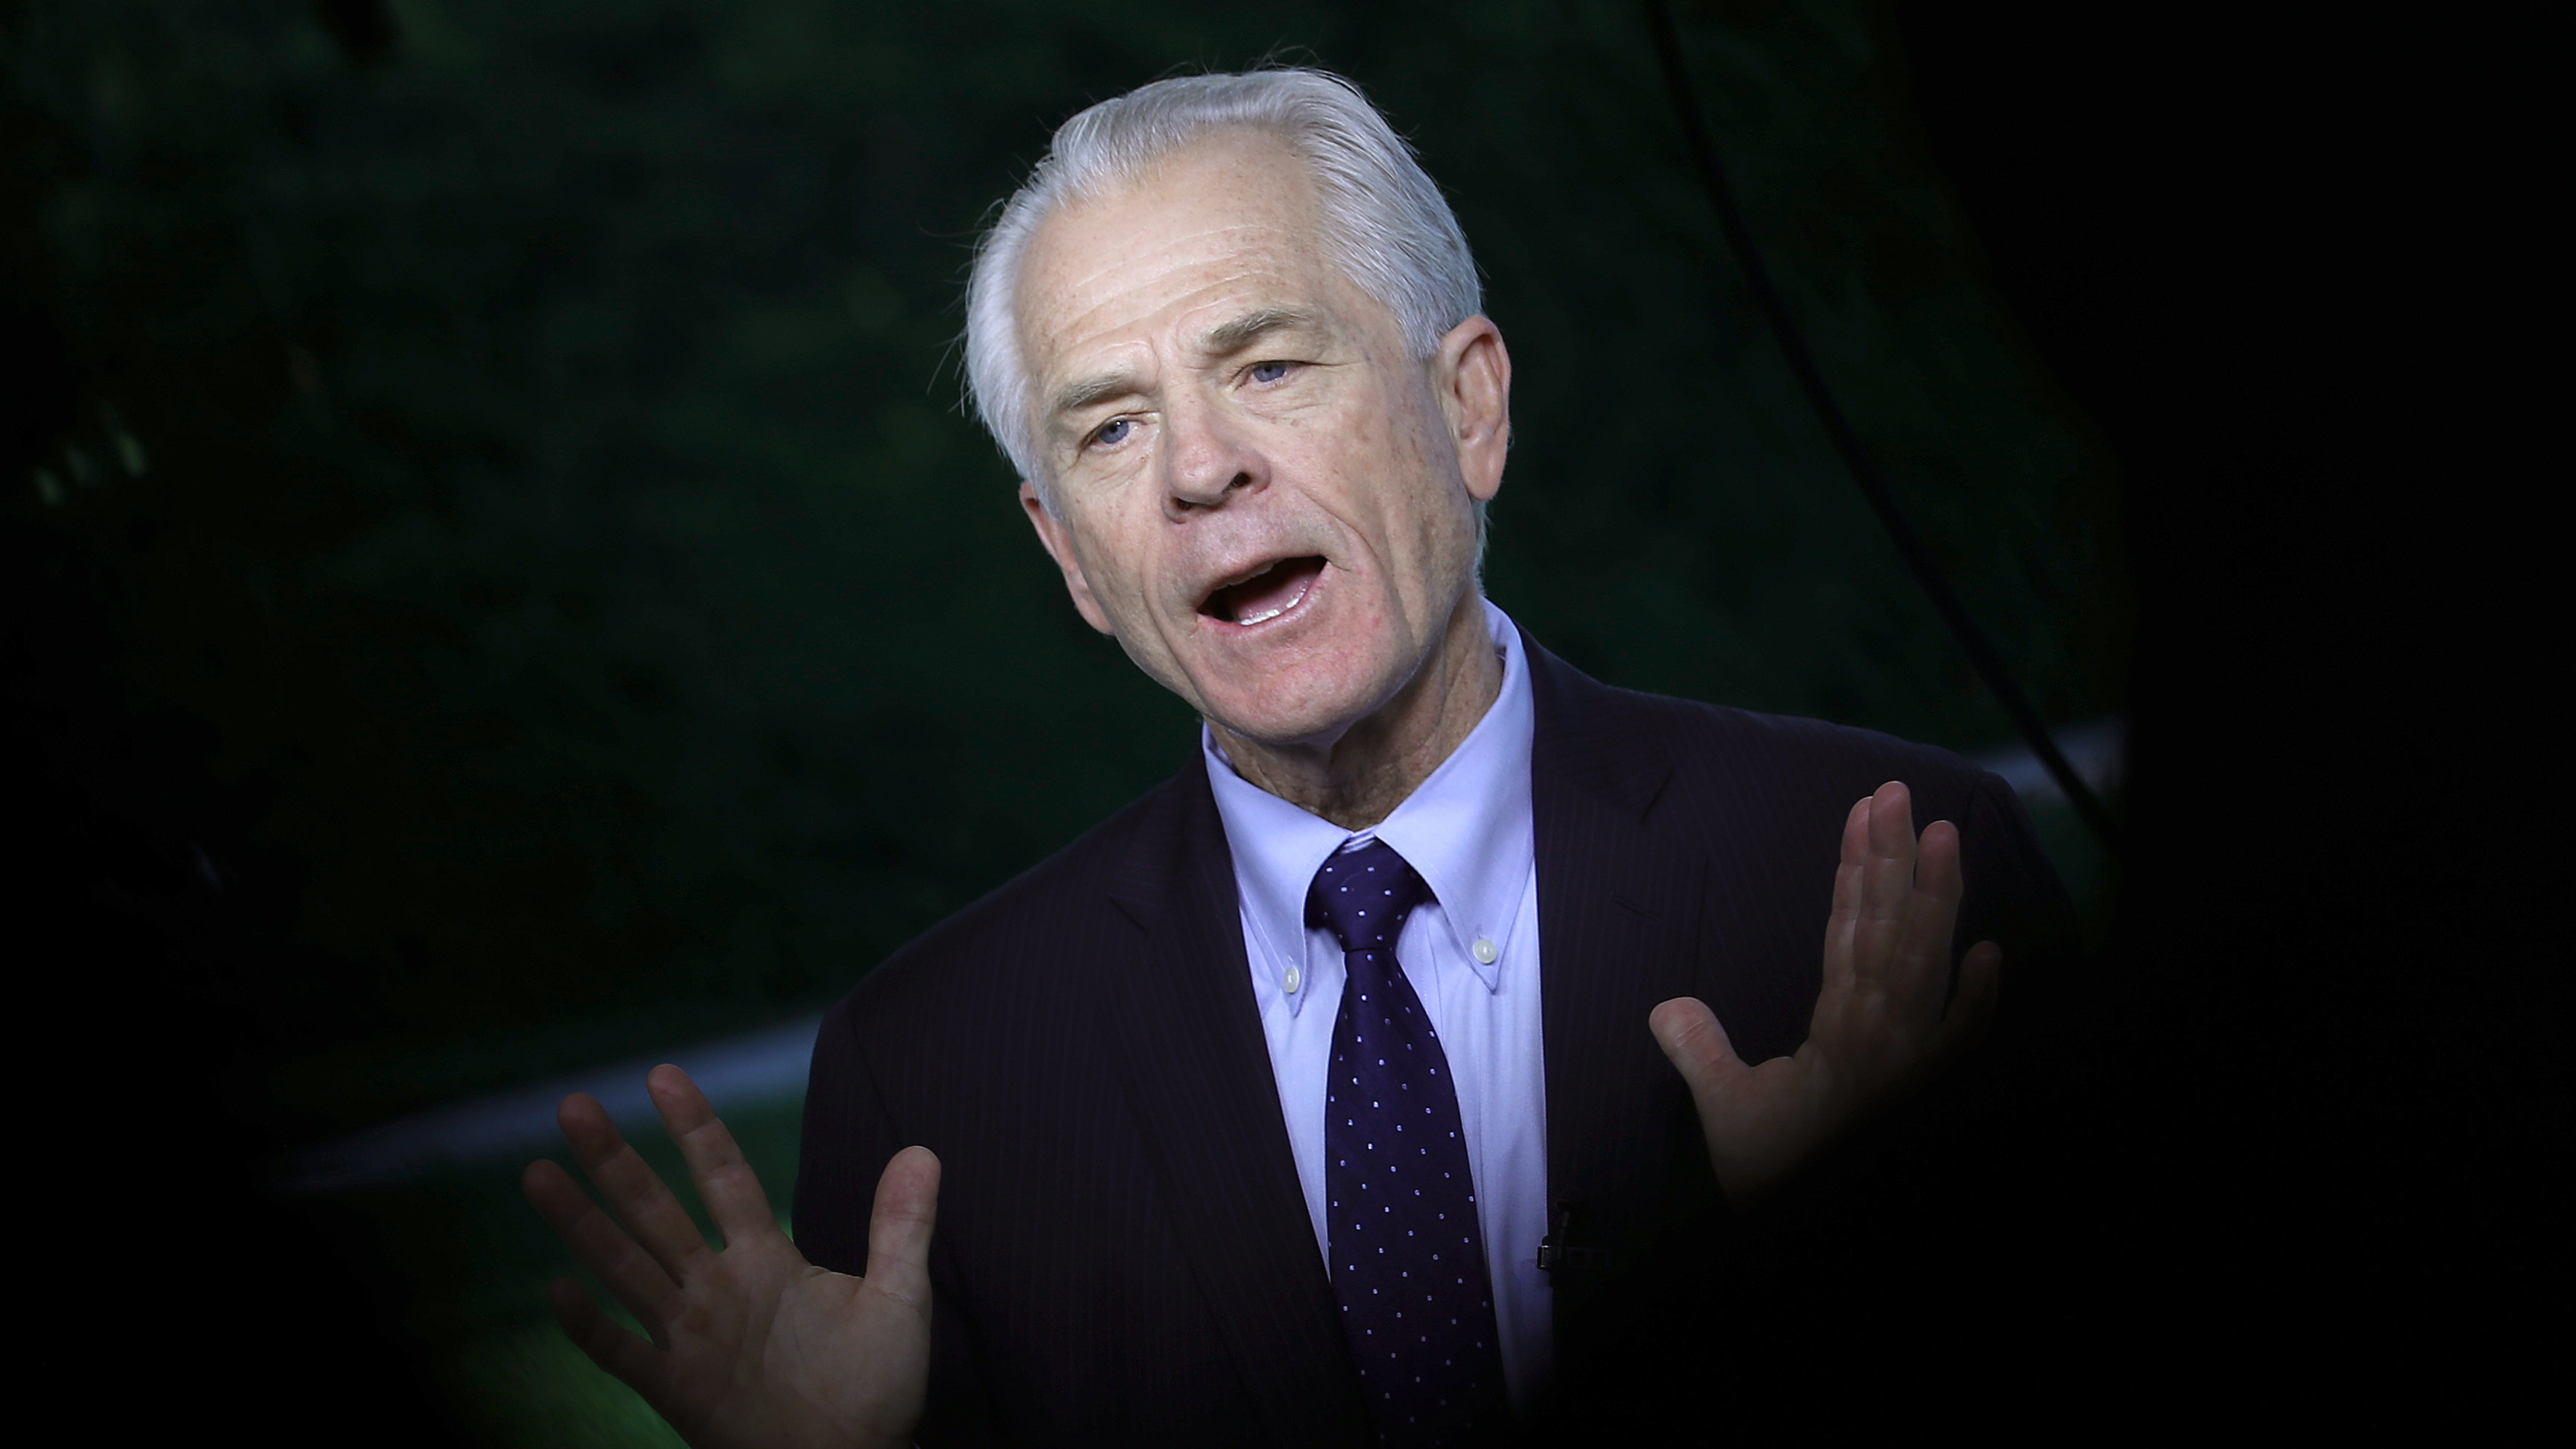 White House Adviser Peter Navarro Calls Fictional Alter Ego An 'Inside Joke'